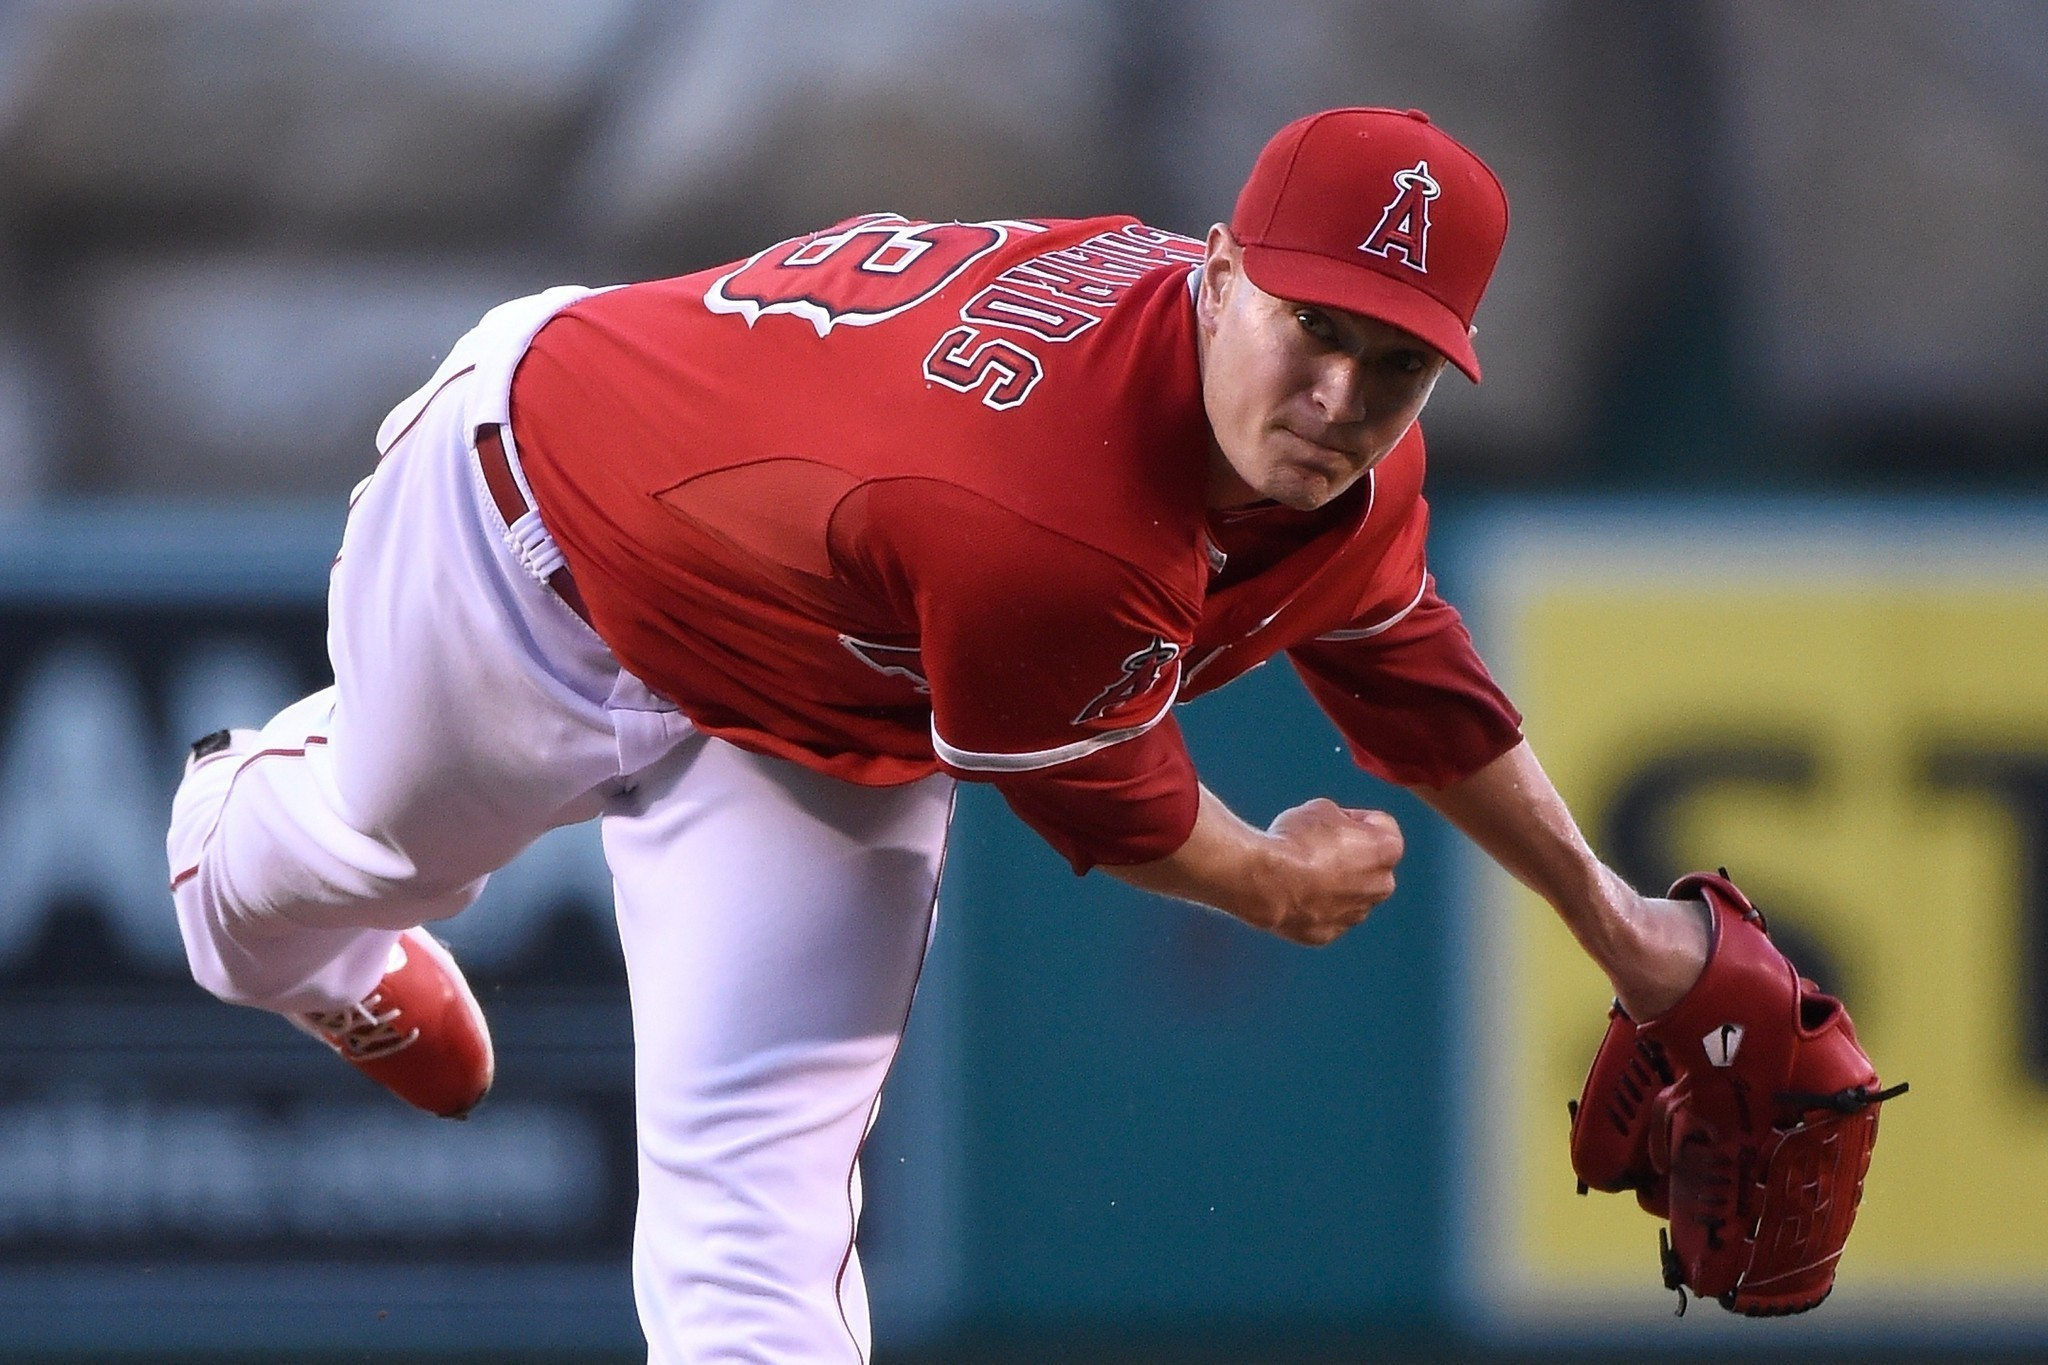 Garrett Richards still an ace-in-waiting as Angels lose, 6-4, to Tigers